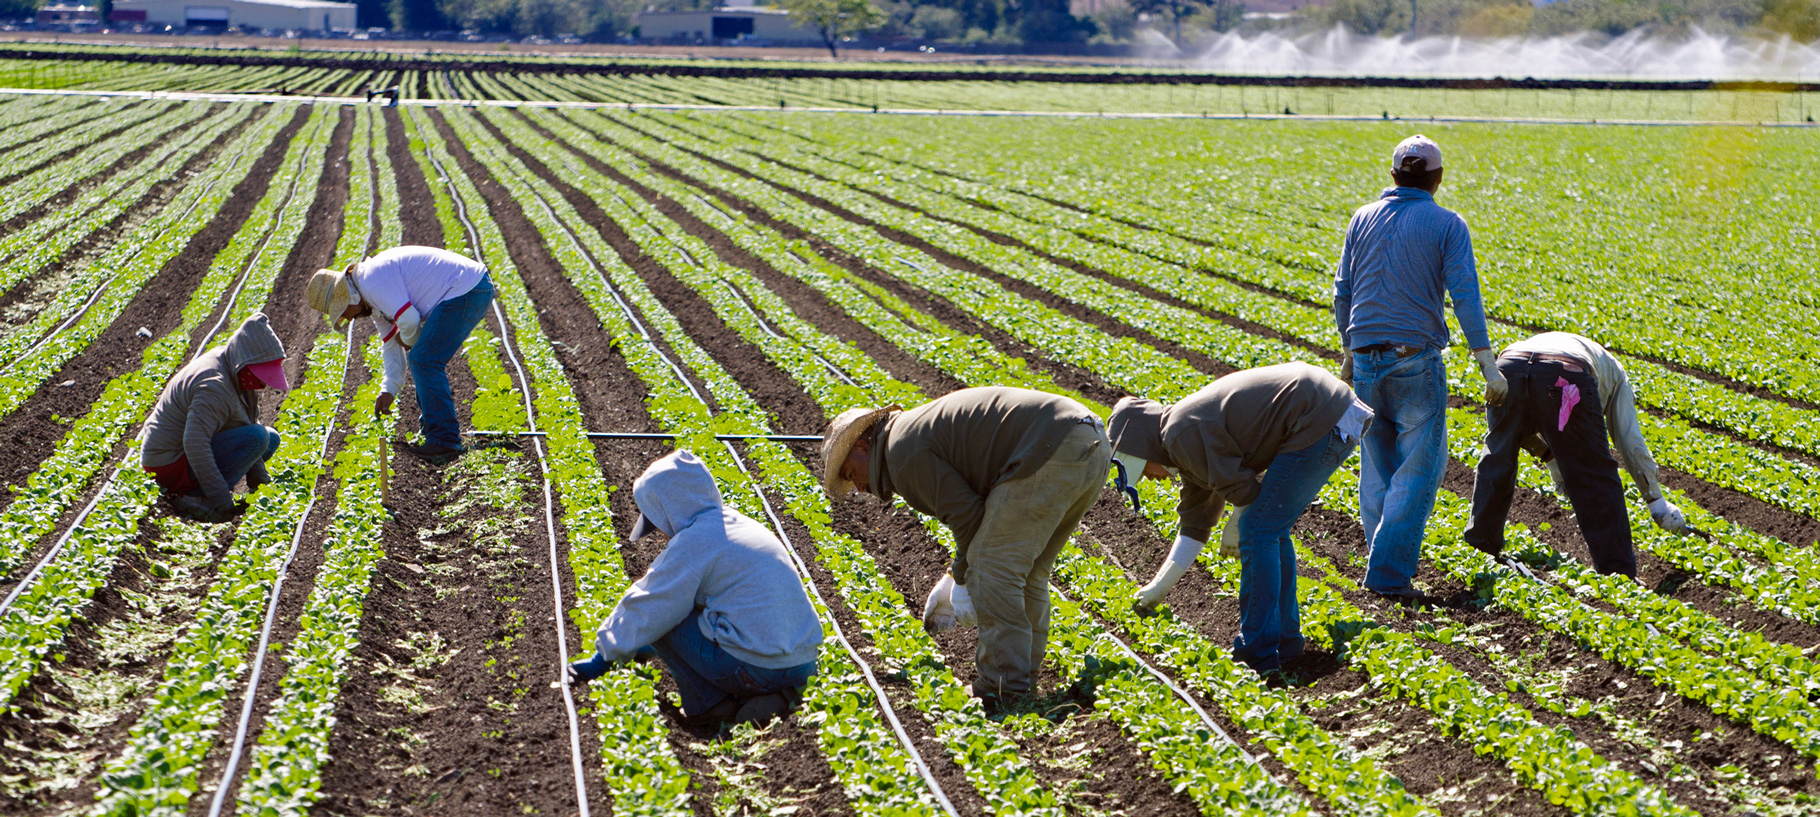 immigrant-farmworkers.jpg